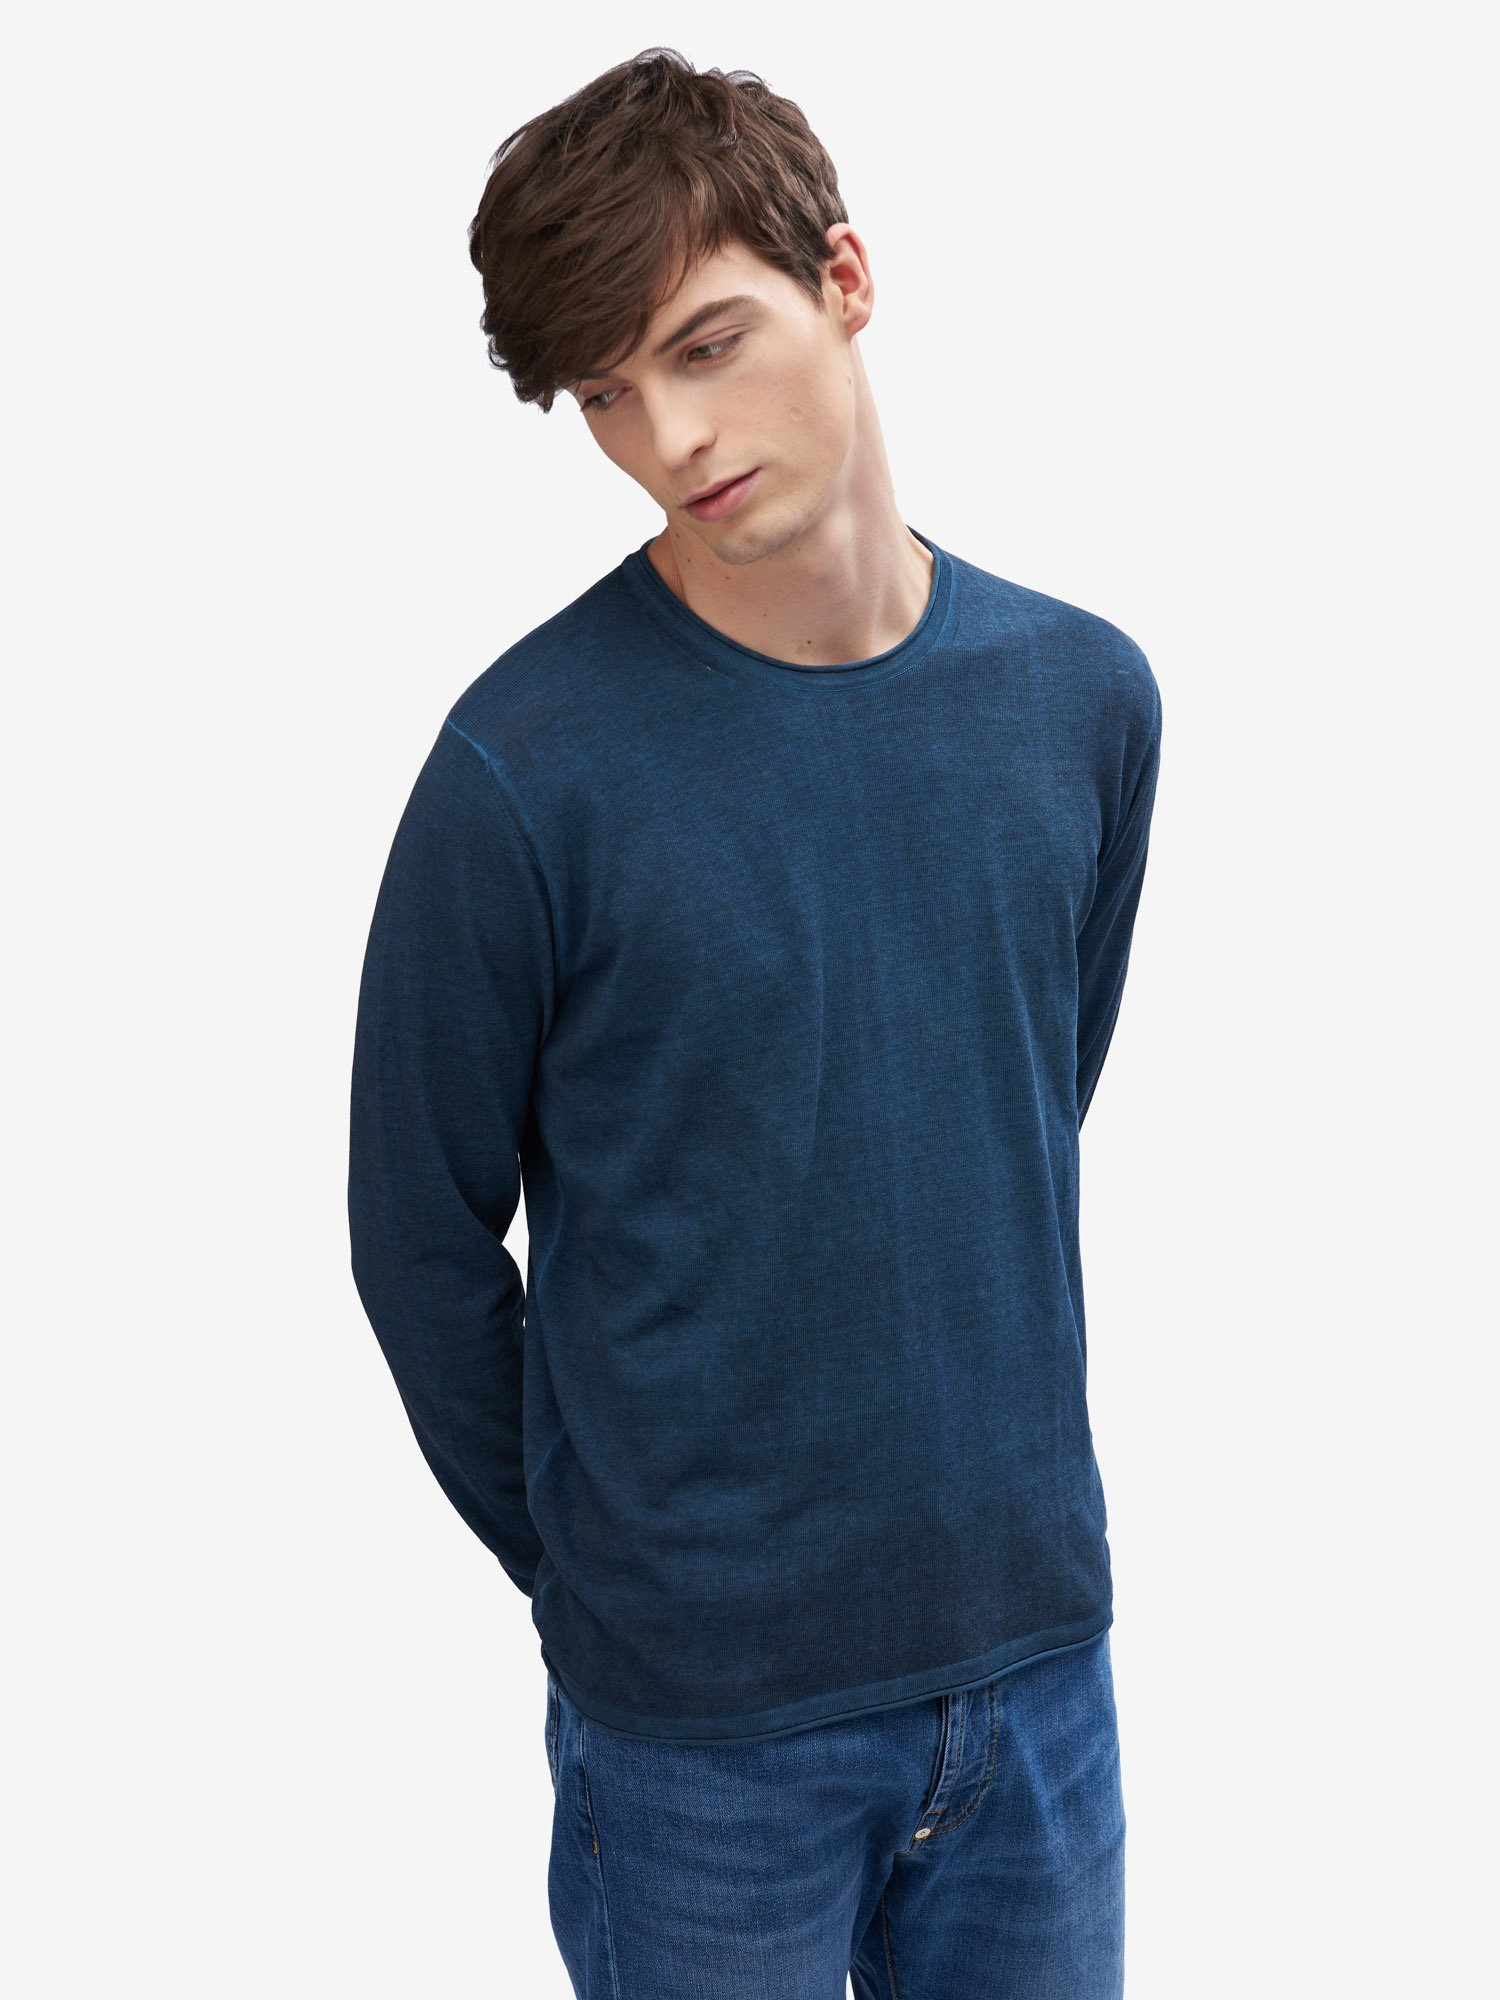 VINTAGE-EFFECT SWEATER - Blauer